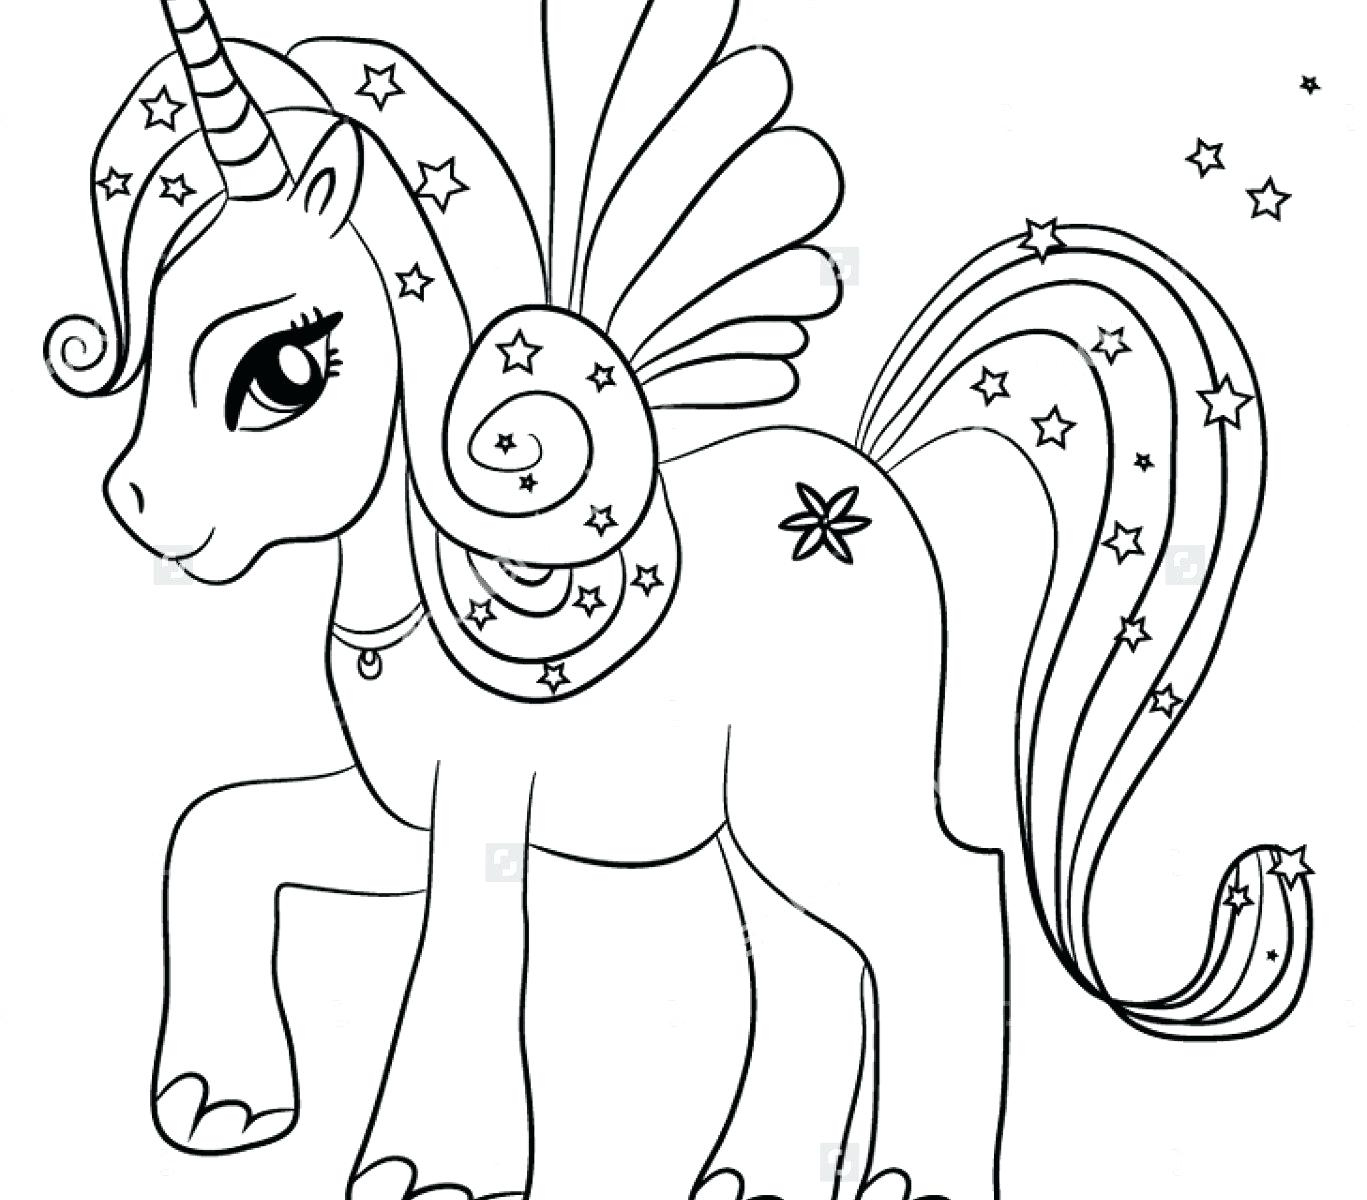 Printable Unicorn Coloring Pages Free Petman Me 1367×1200 Attachment - Free Printable Unicorn Coloring Pages